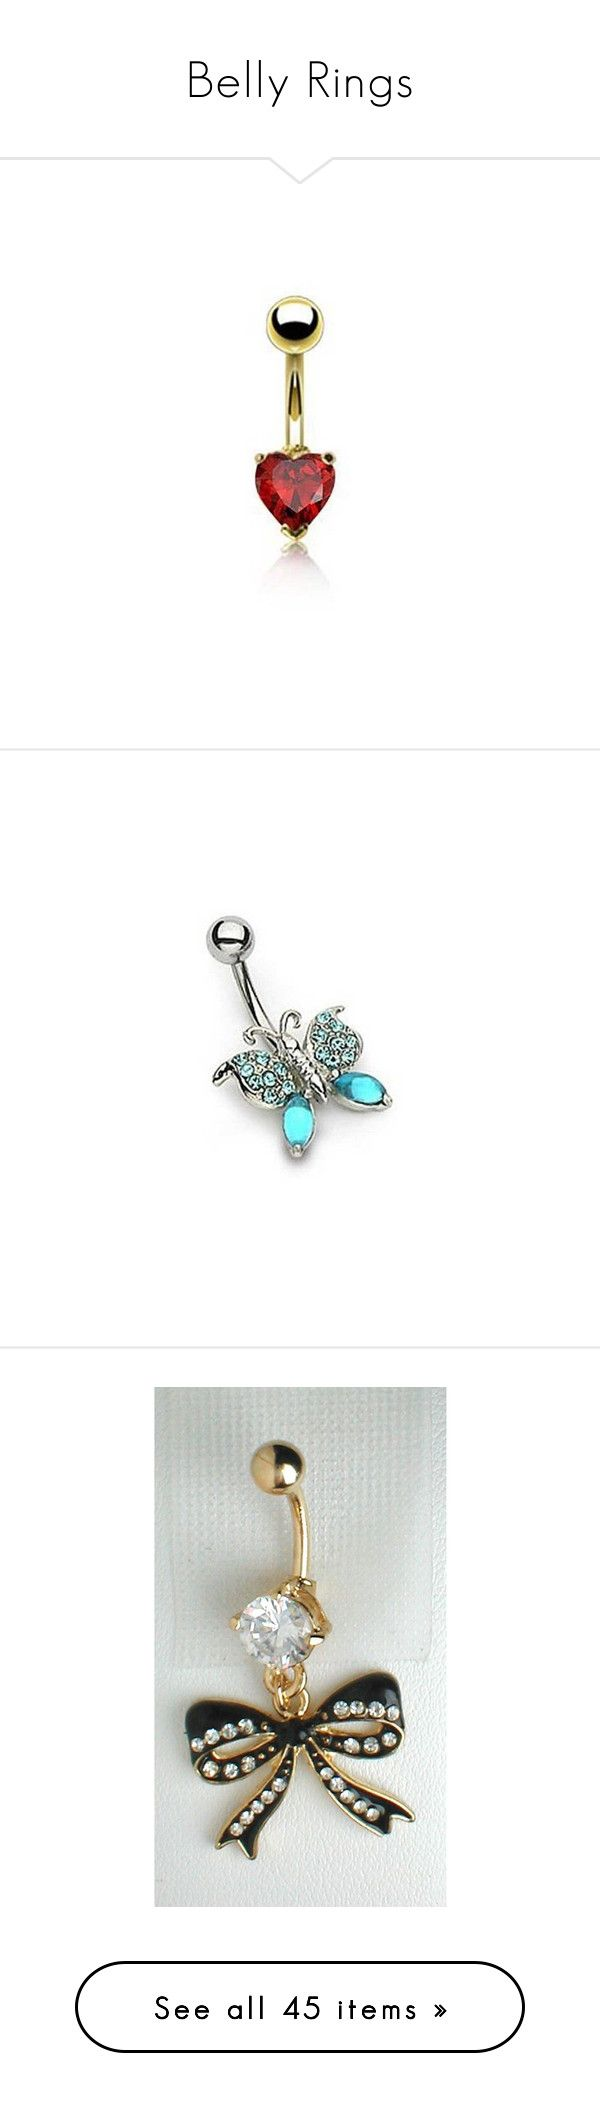 """""""Belly Rings"""" by kate2248 on Polyvore featuring jewelry, red, belly button rings jewelry, red jewelry, cubic zirconia jewelry, heart jewelry, garnet jewelry, blue, cz jewelry and butterfly wing jewelry"""